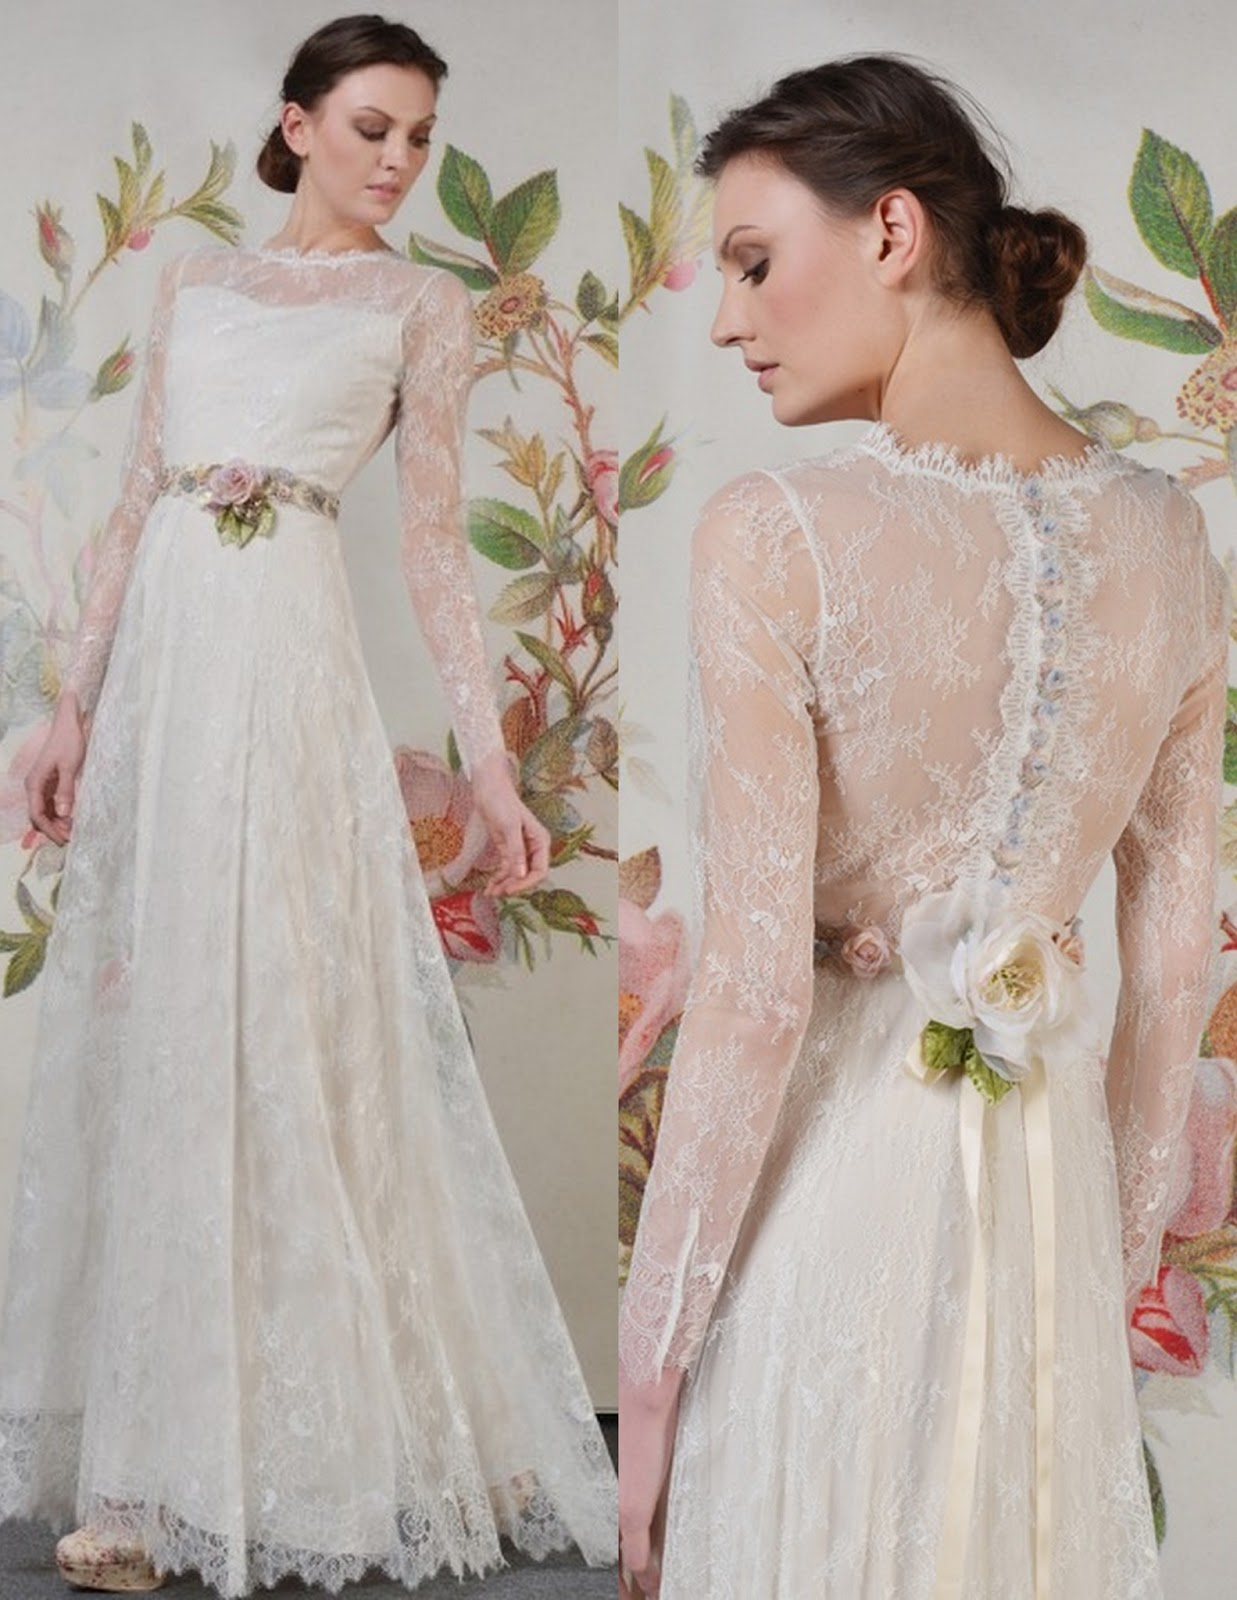 Lace Wedding Dresses With f The Shoulder Sleeves